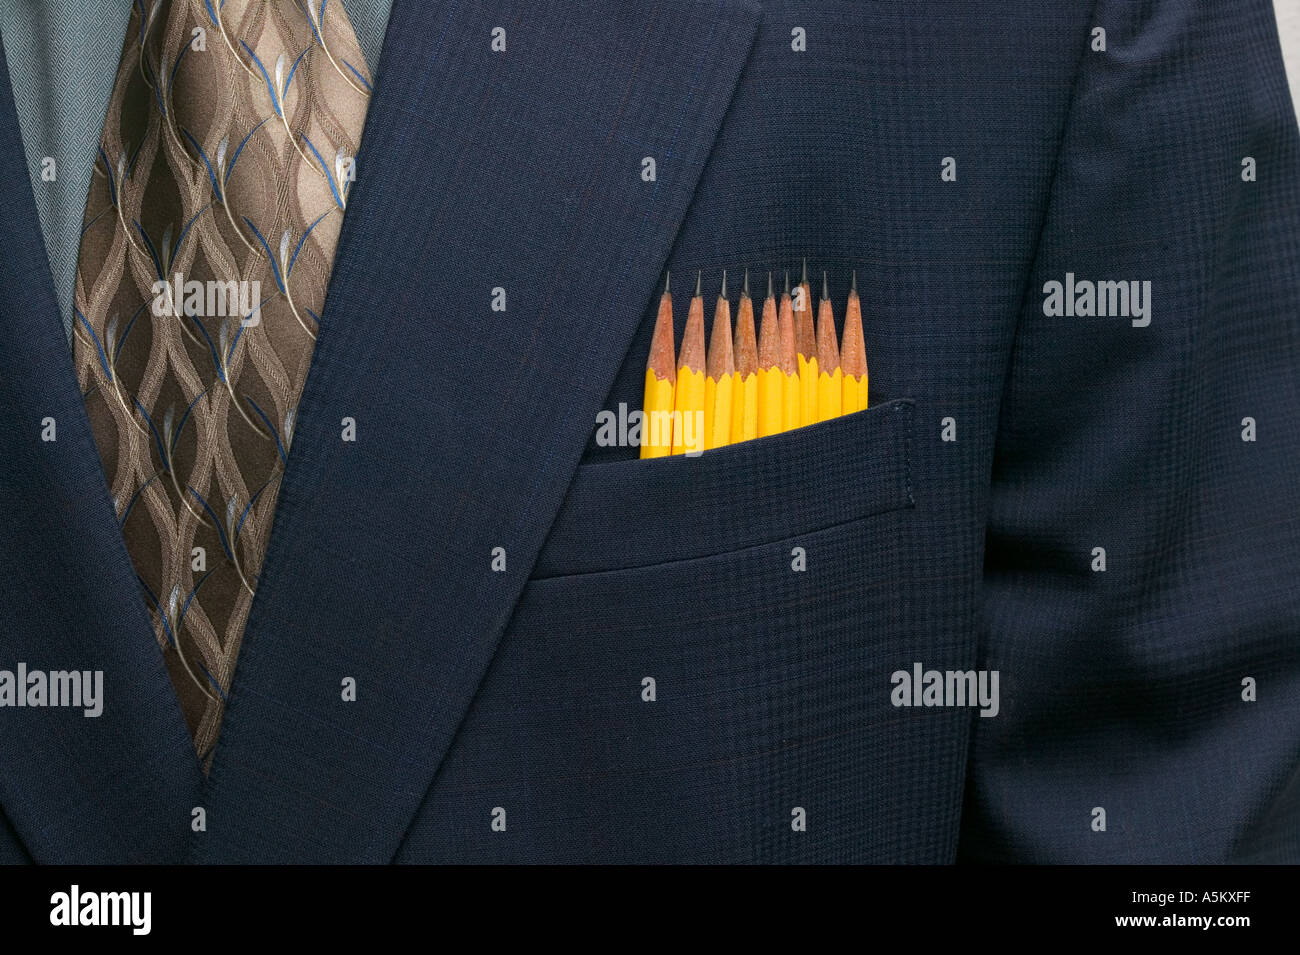 row of pencils in suit pocket of executive - Stock Image